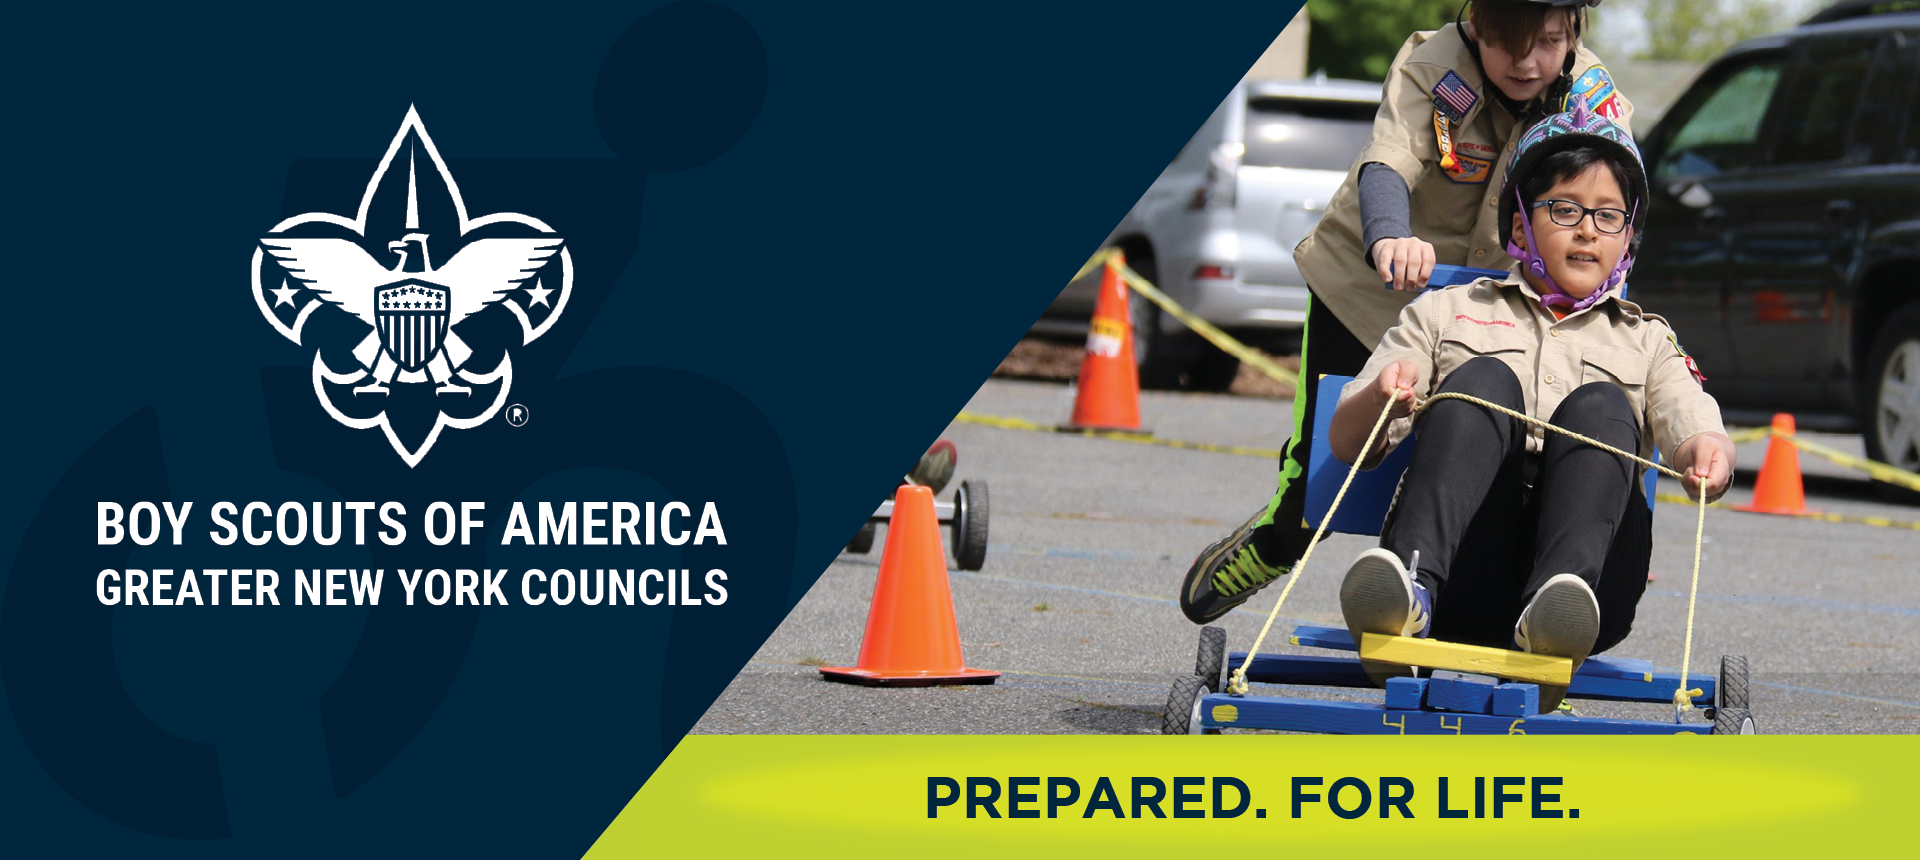 On left side of image, the Boy Scouts of America Greater New York Councils logo. On right side of the image, a Caucasian boy pushes an Asian boy on a homemade cart. They are both wearing Boy Scout uniforms. Underneath, the image reads: PREPARED. FOR LIFE.